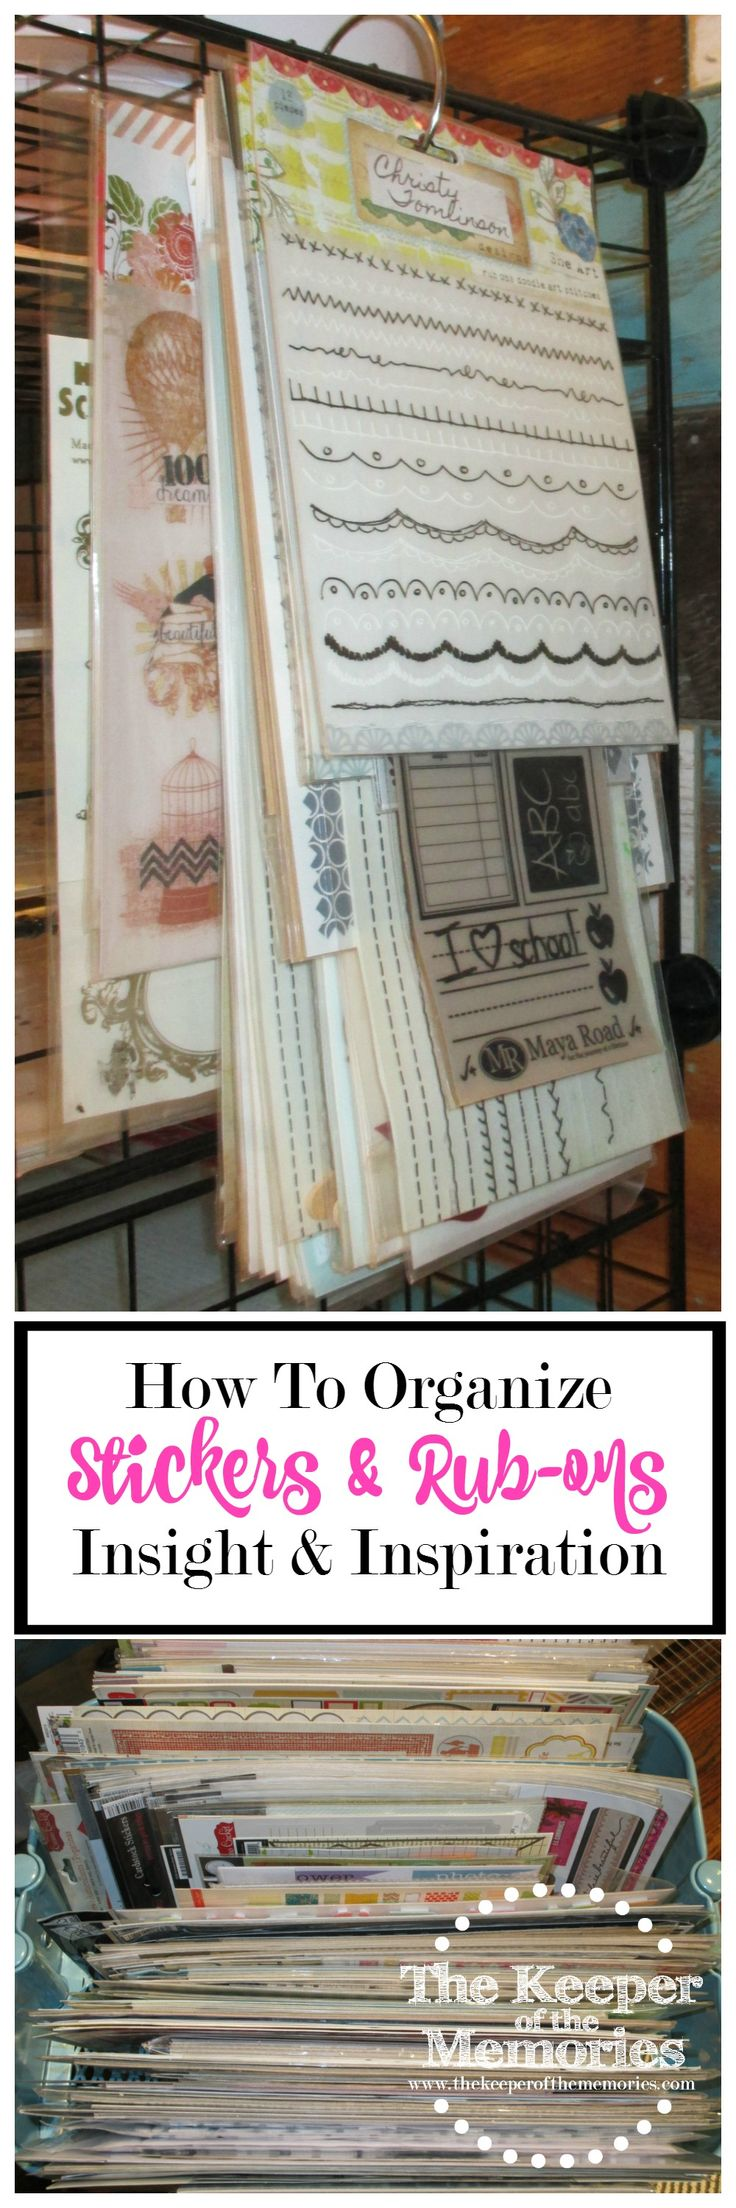 Welcome to week 11 of the 52 Weeks to an Organized Workspace challenge. This week we're organizing our stickers and rub-ons. If it's on a sheet and it's not a letter, let's figure out what to do with it. Are you with me?